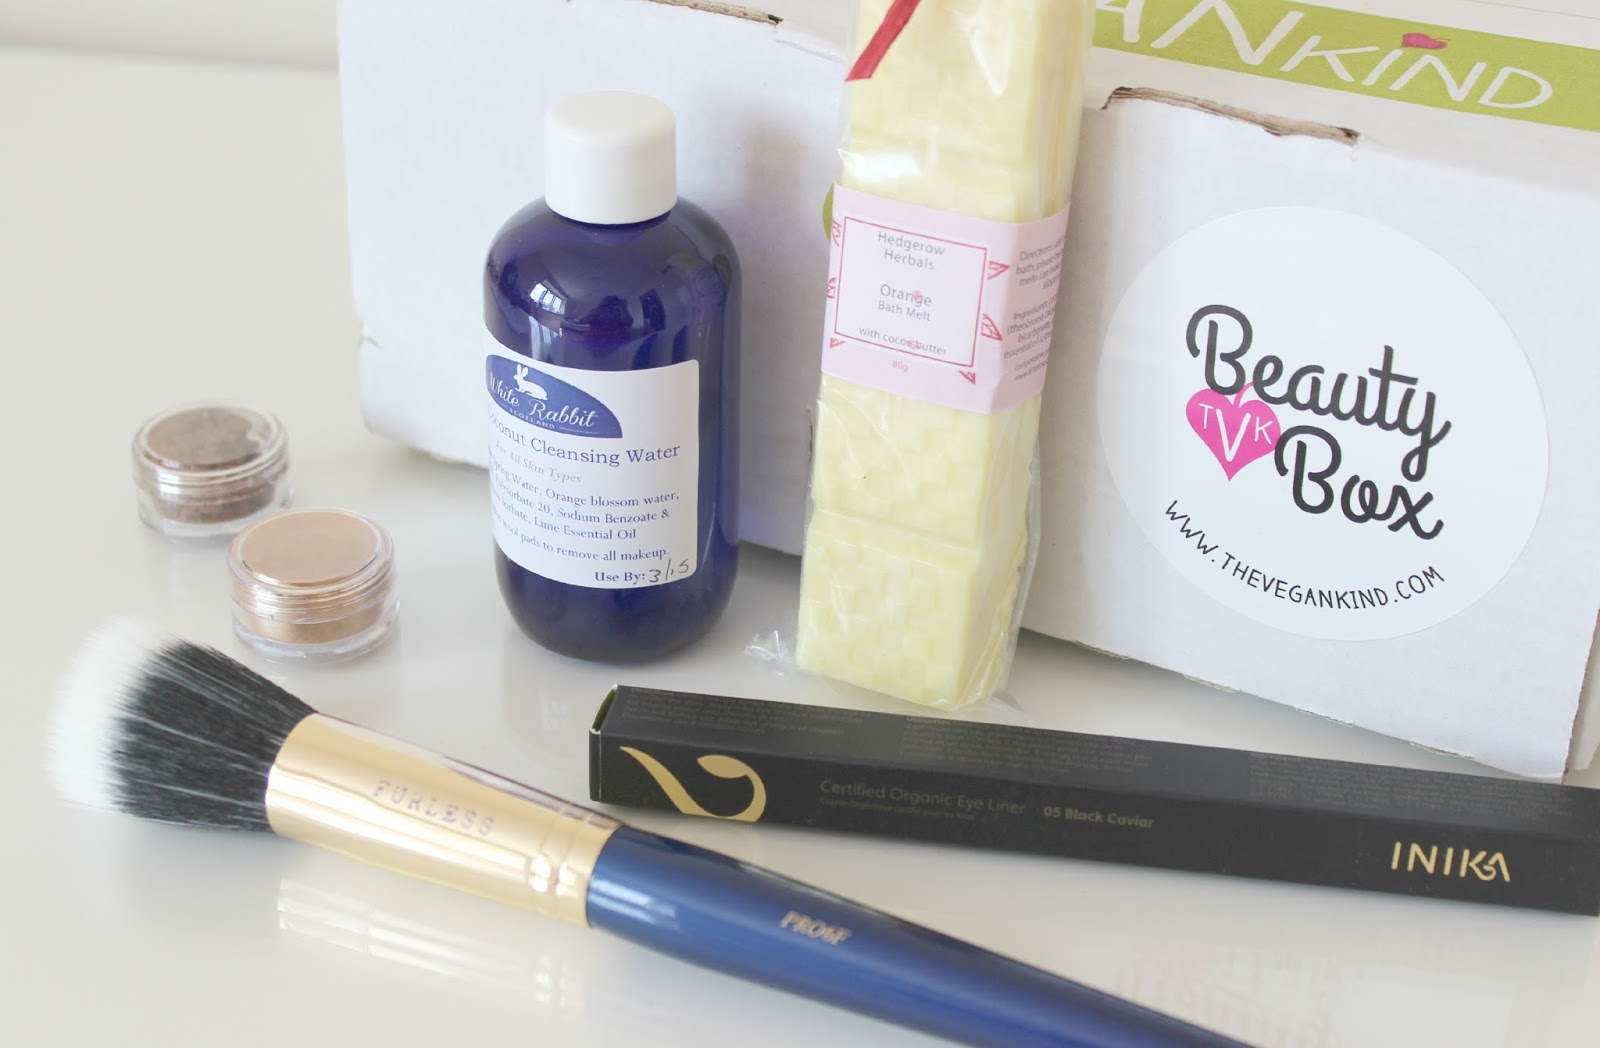 A picture of the July 2014 The Vegan Kind Beauty Box